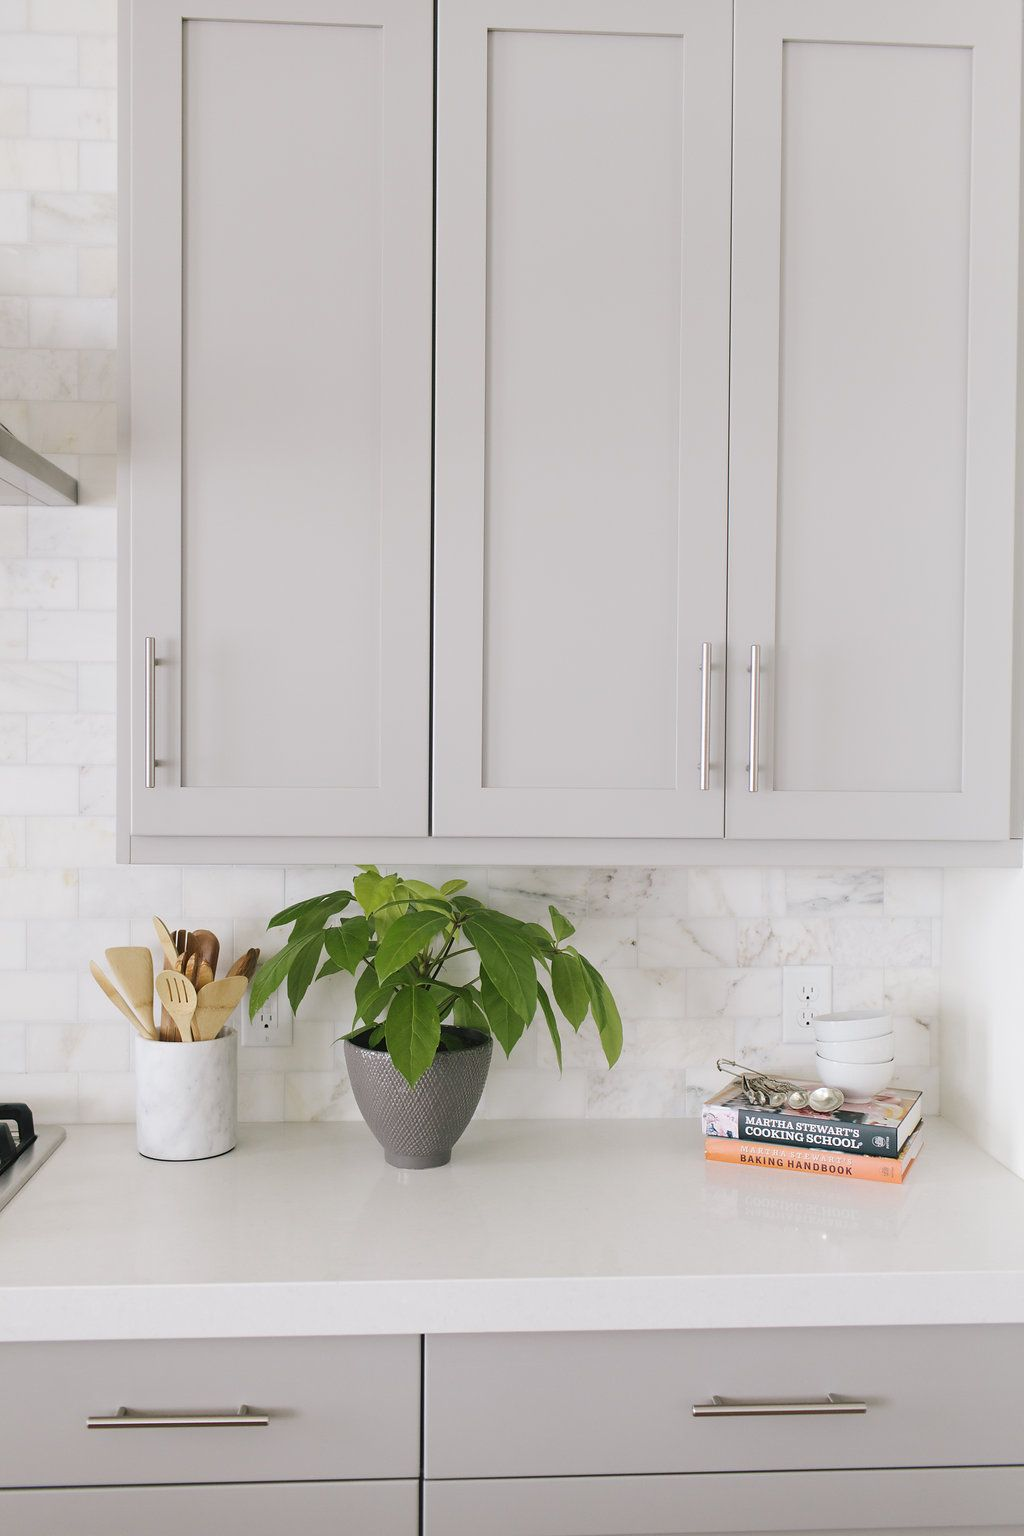 Cabinet Color Sherwin Williams Mindful Gray KItchen Remodel - Light grey kitchen cabinet paint